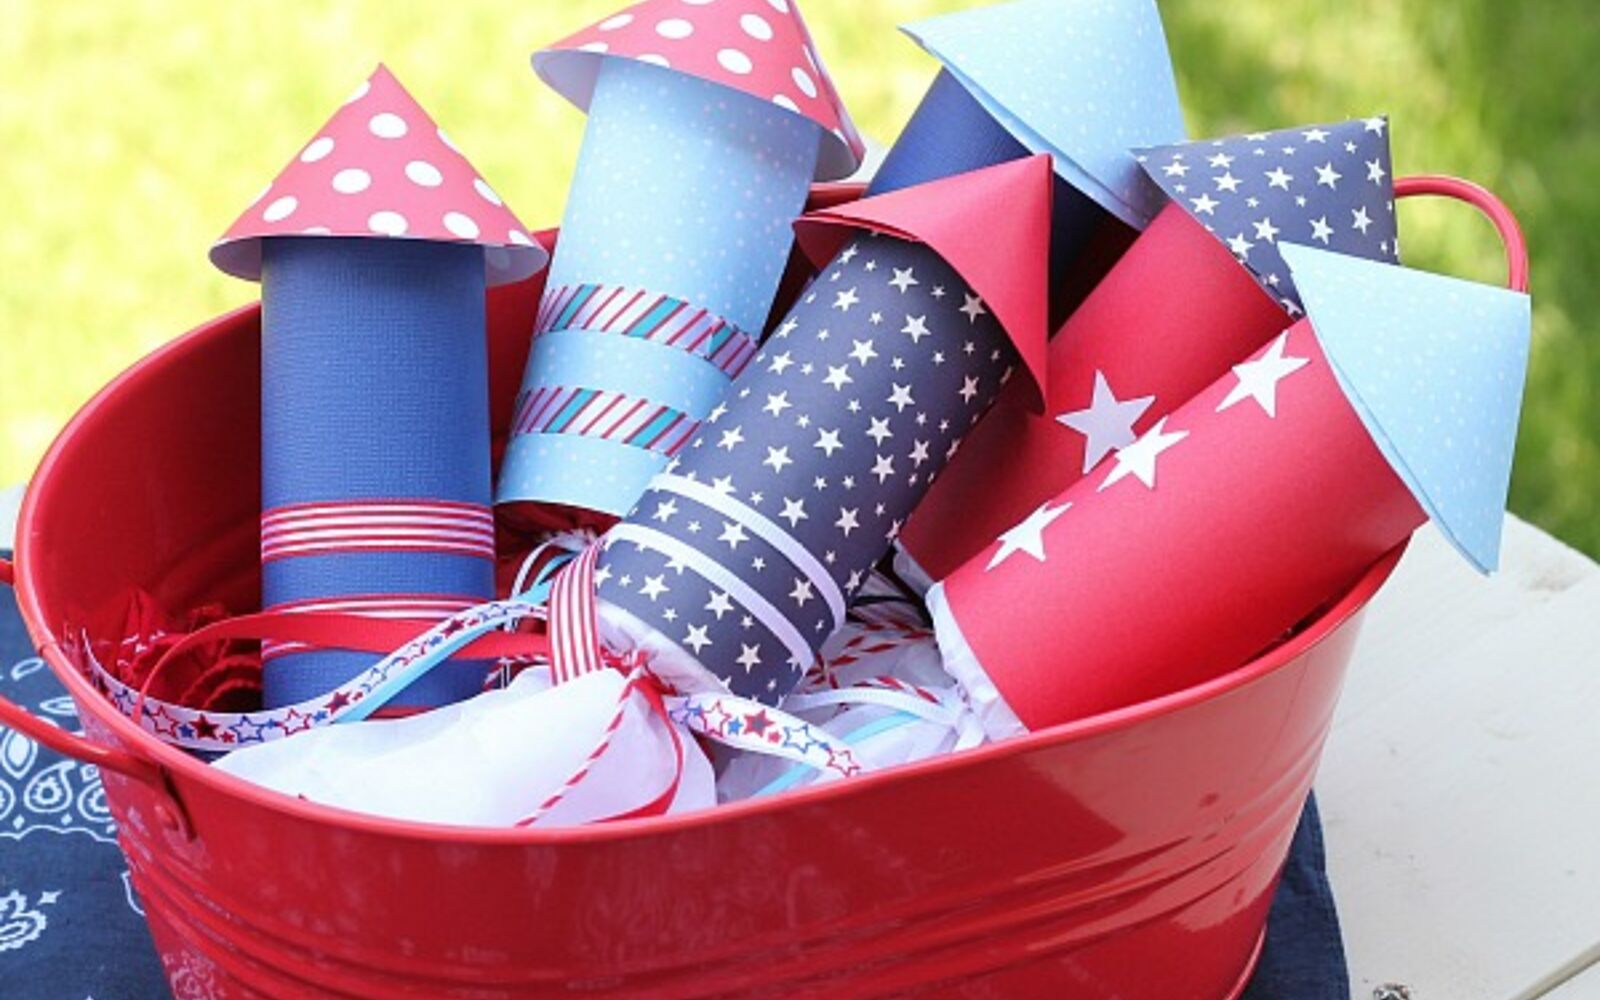 s 30 adorable diy ideas for july 4th, Make fun TP roll candy rockets for kids